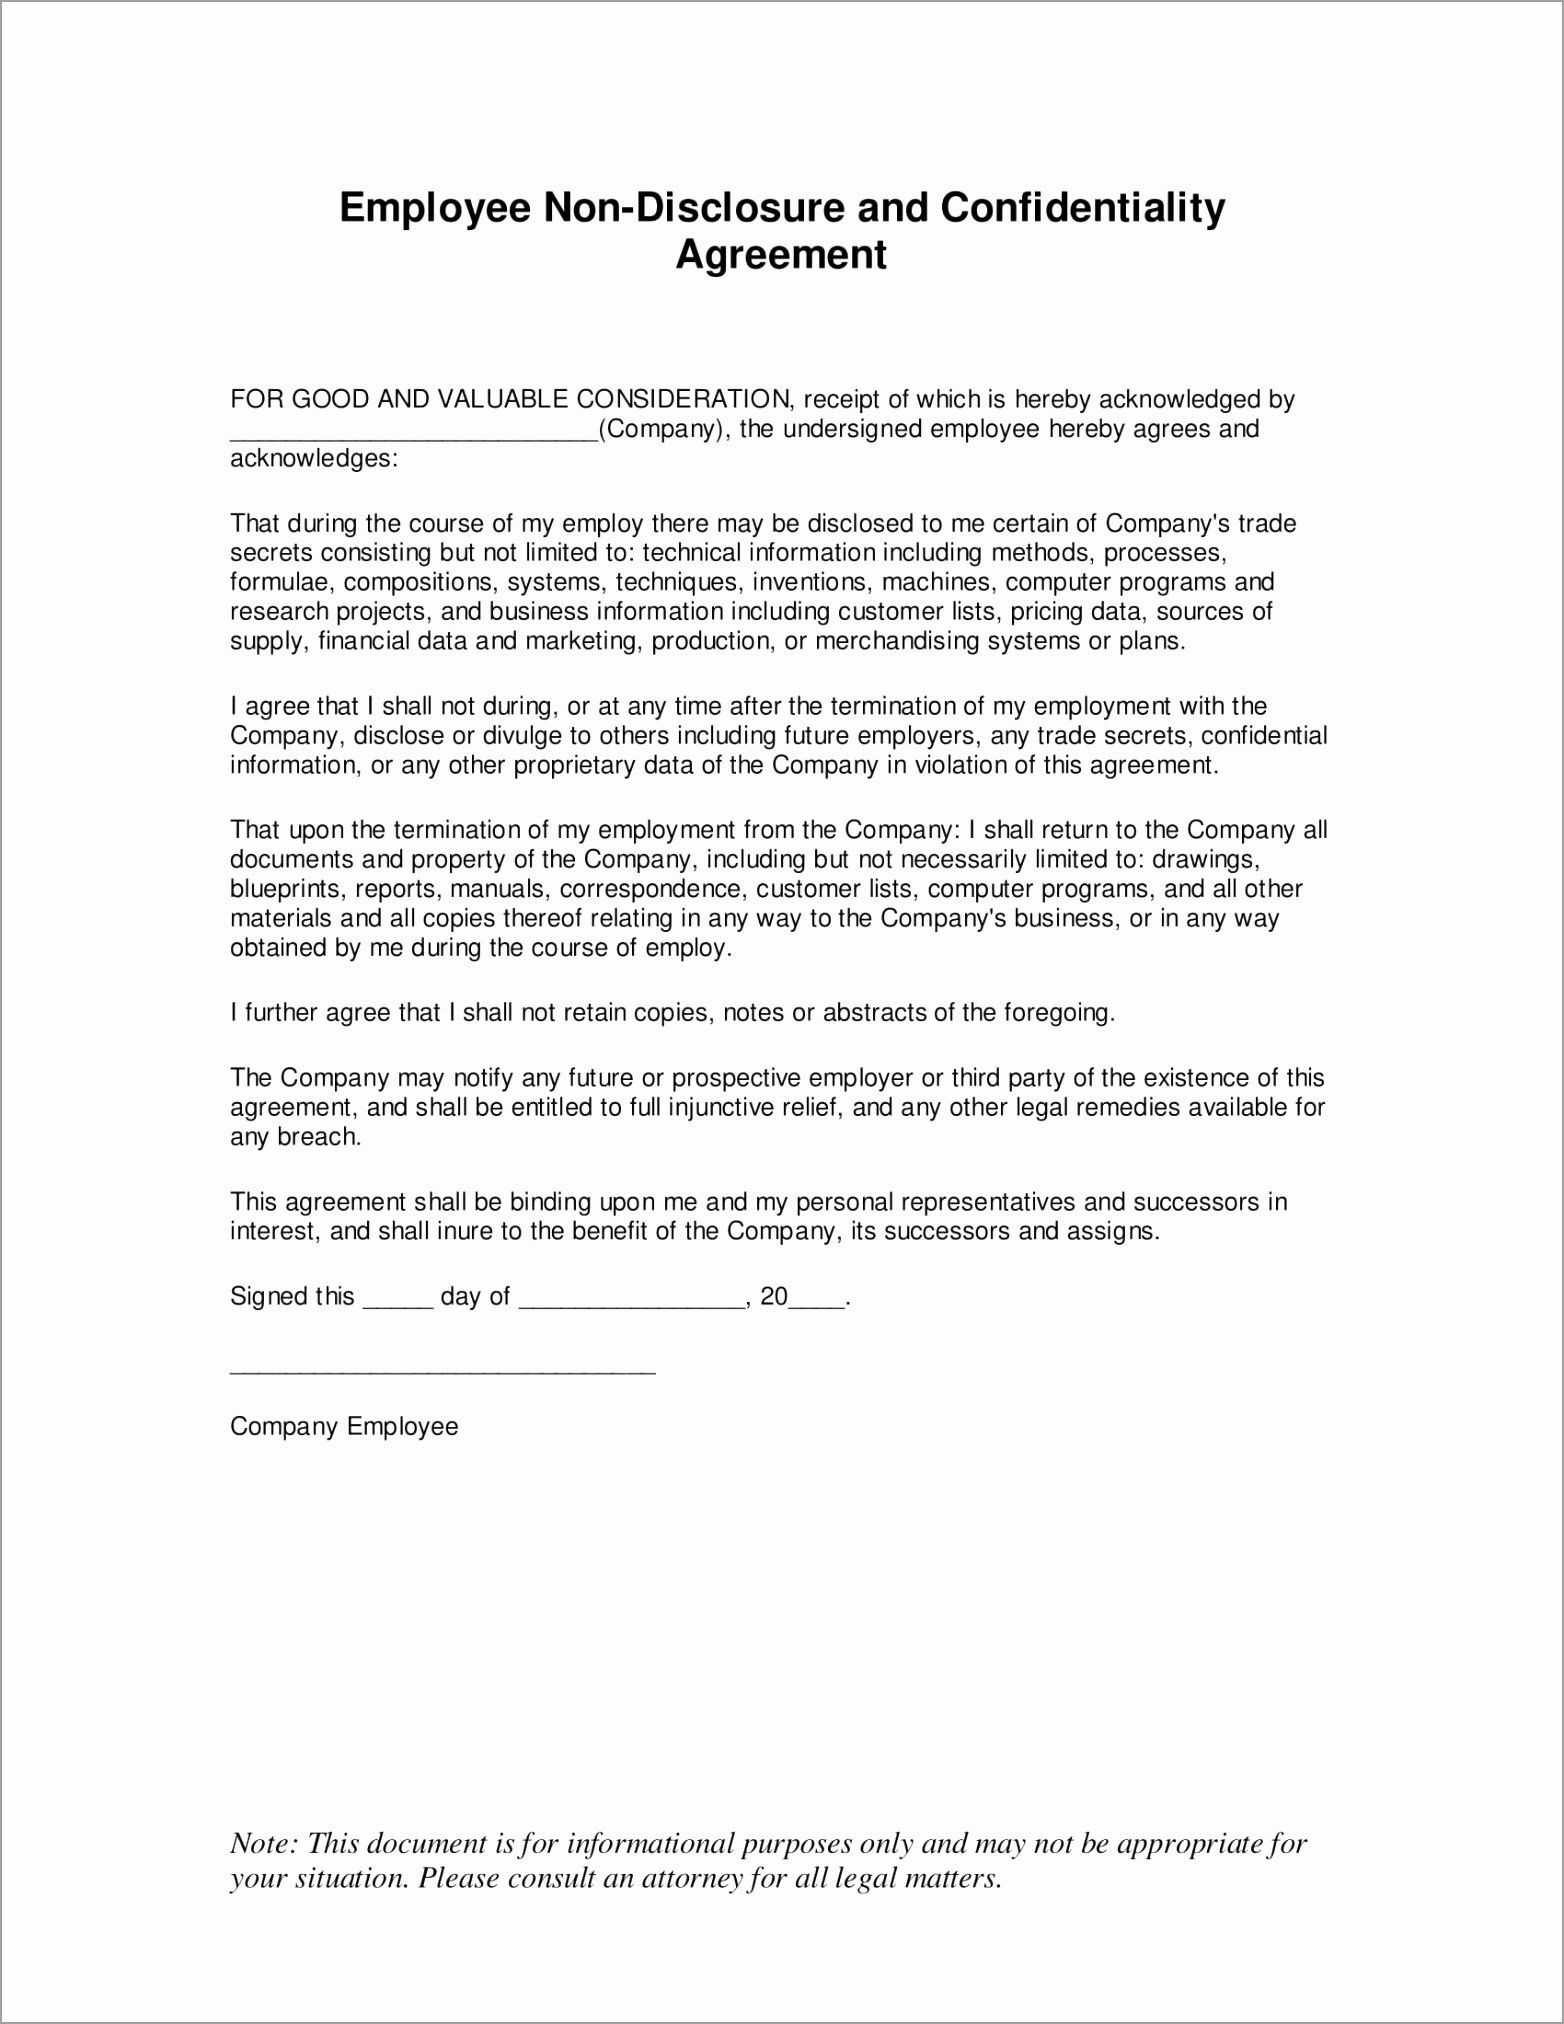 Employee Confidentiality Agreement Form 1 owiei